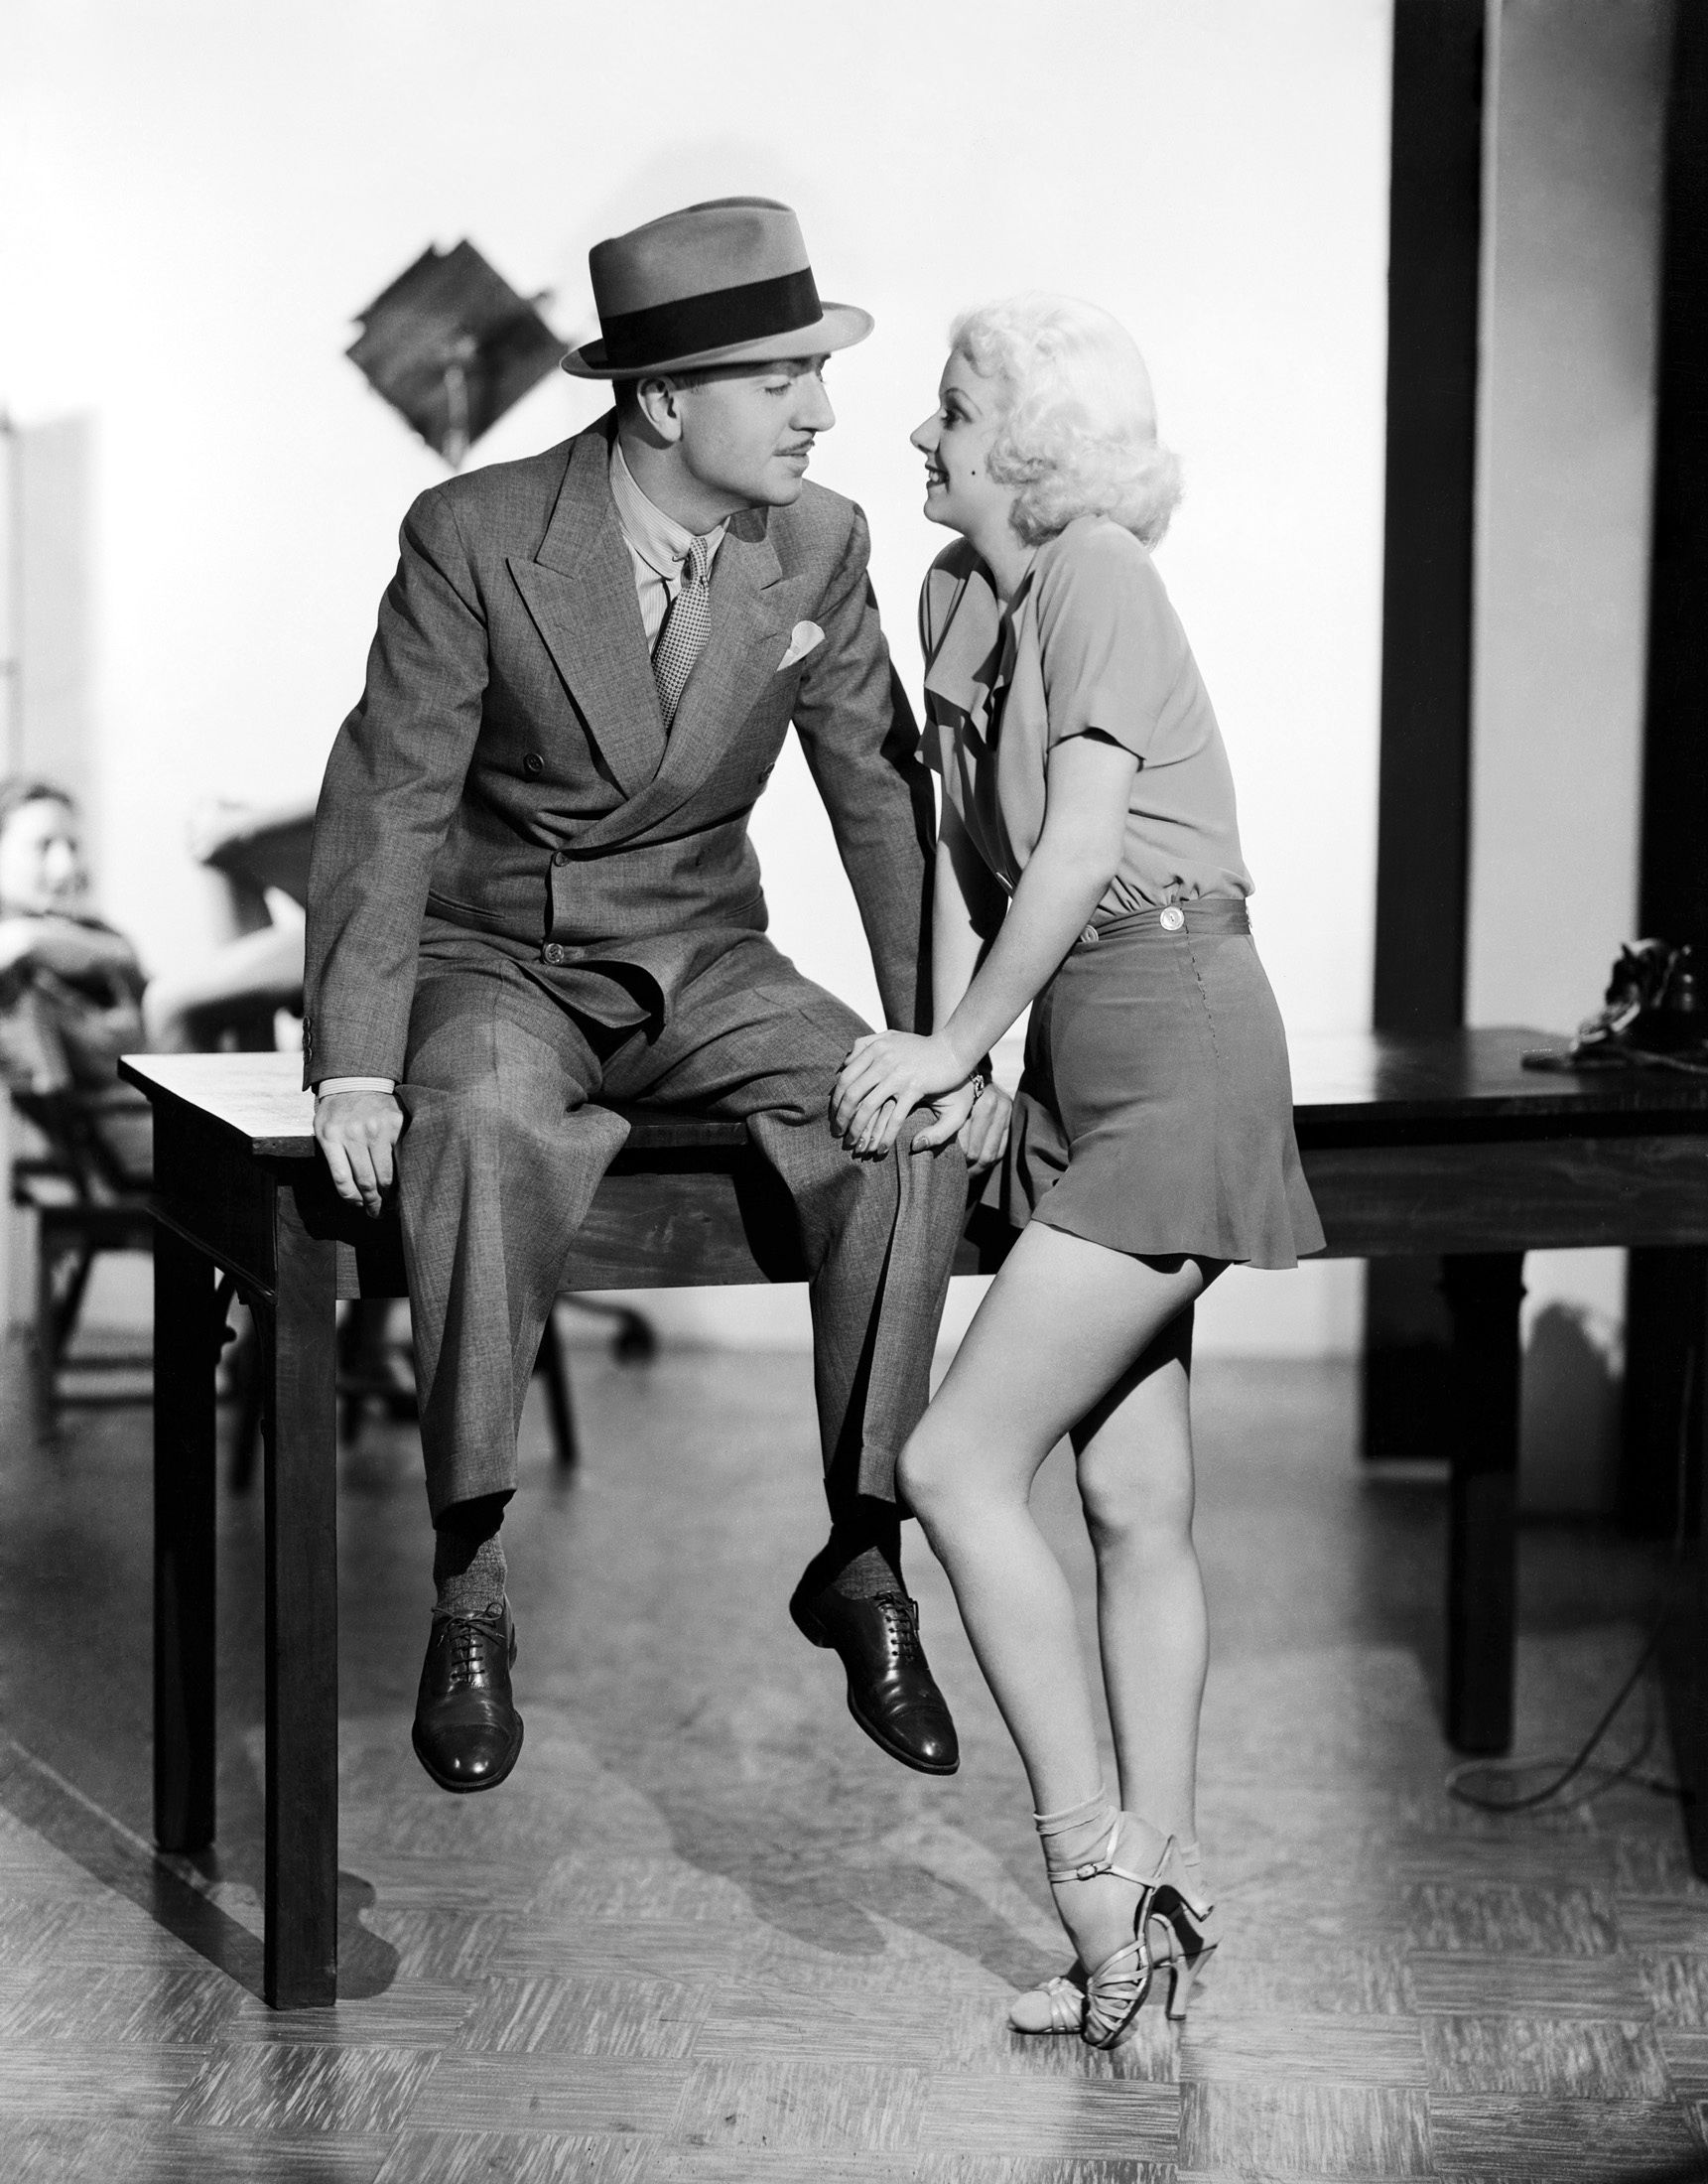 Jean Harlow with William Powell in Reckless